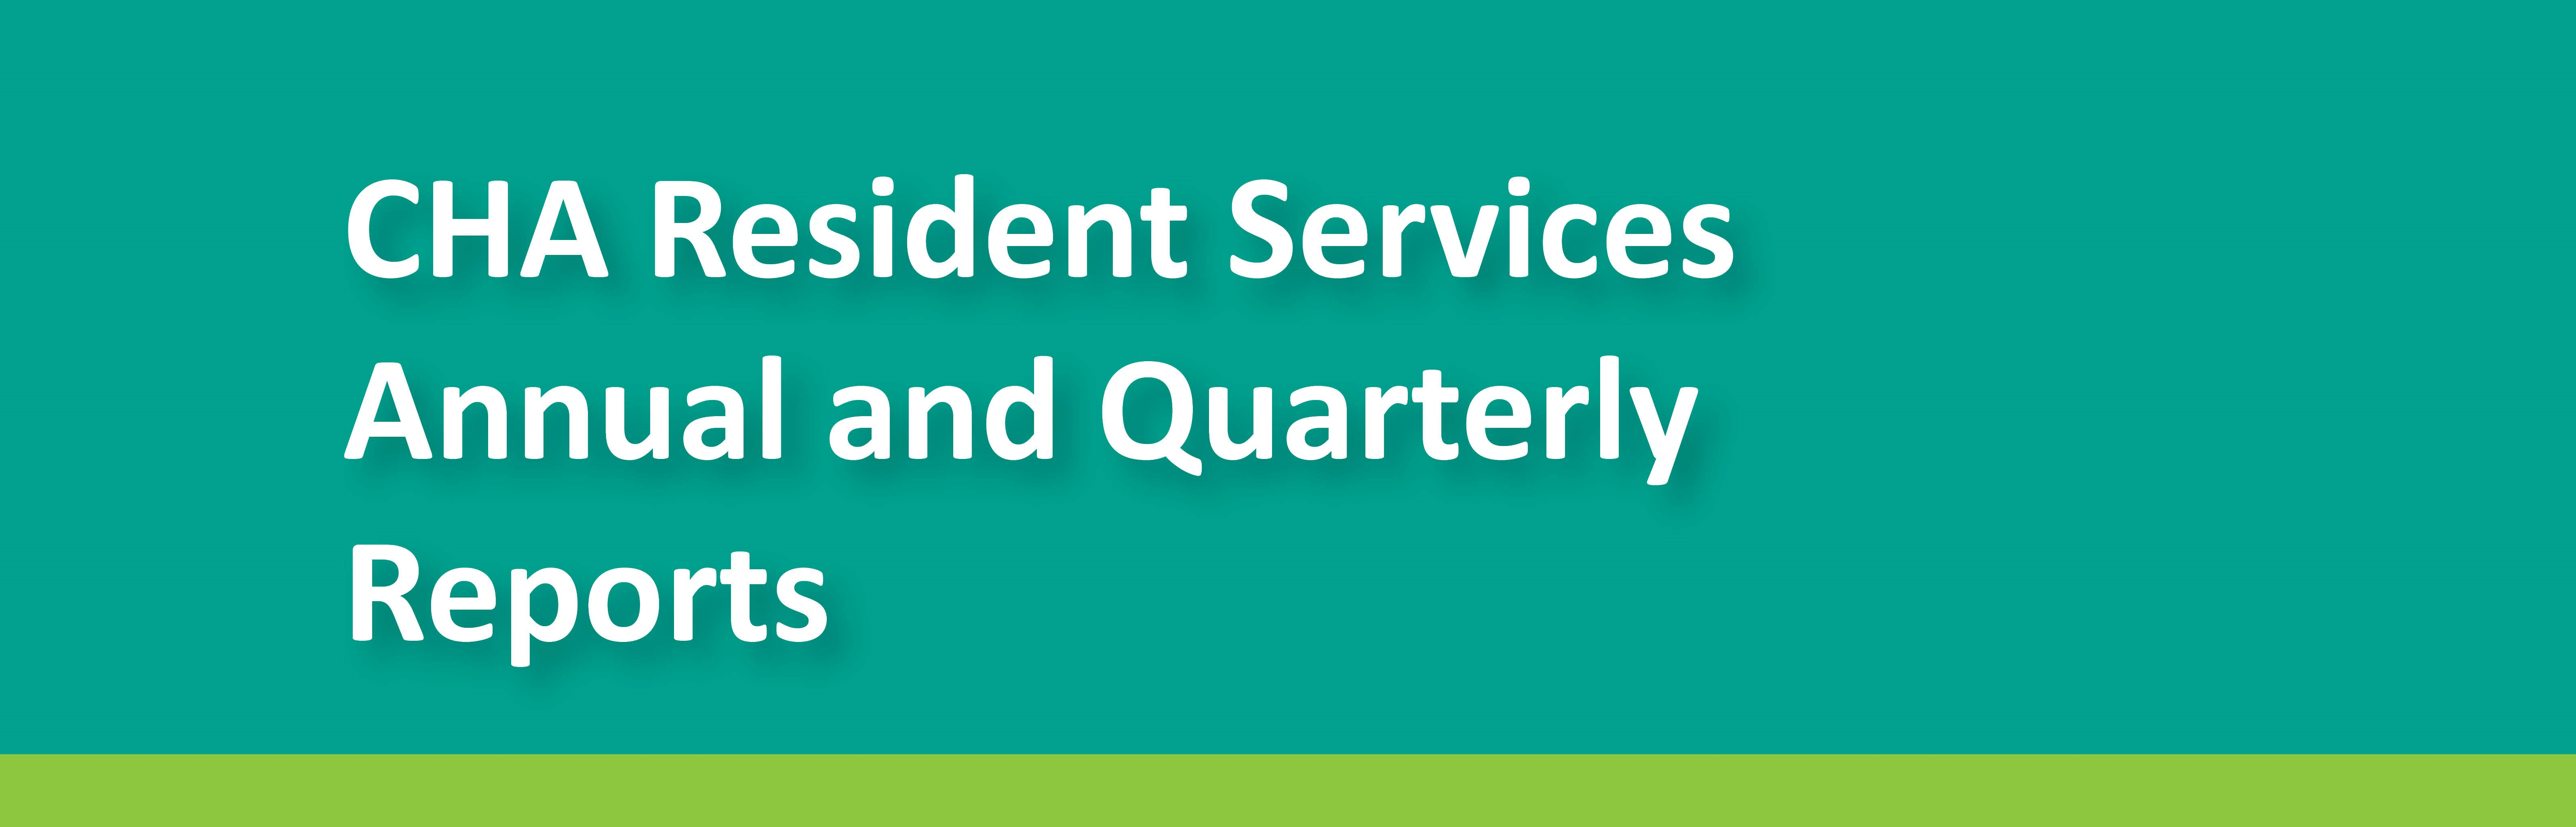 Resident Services Report Header